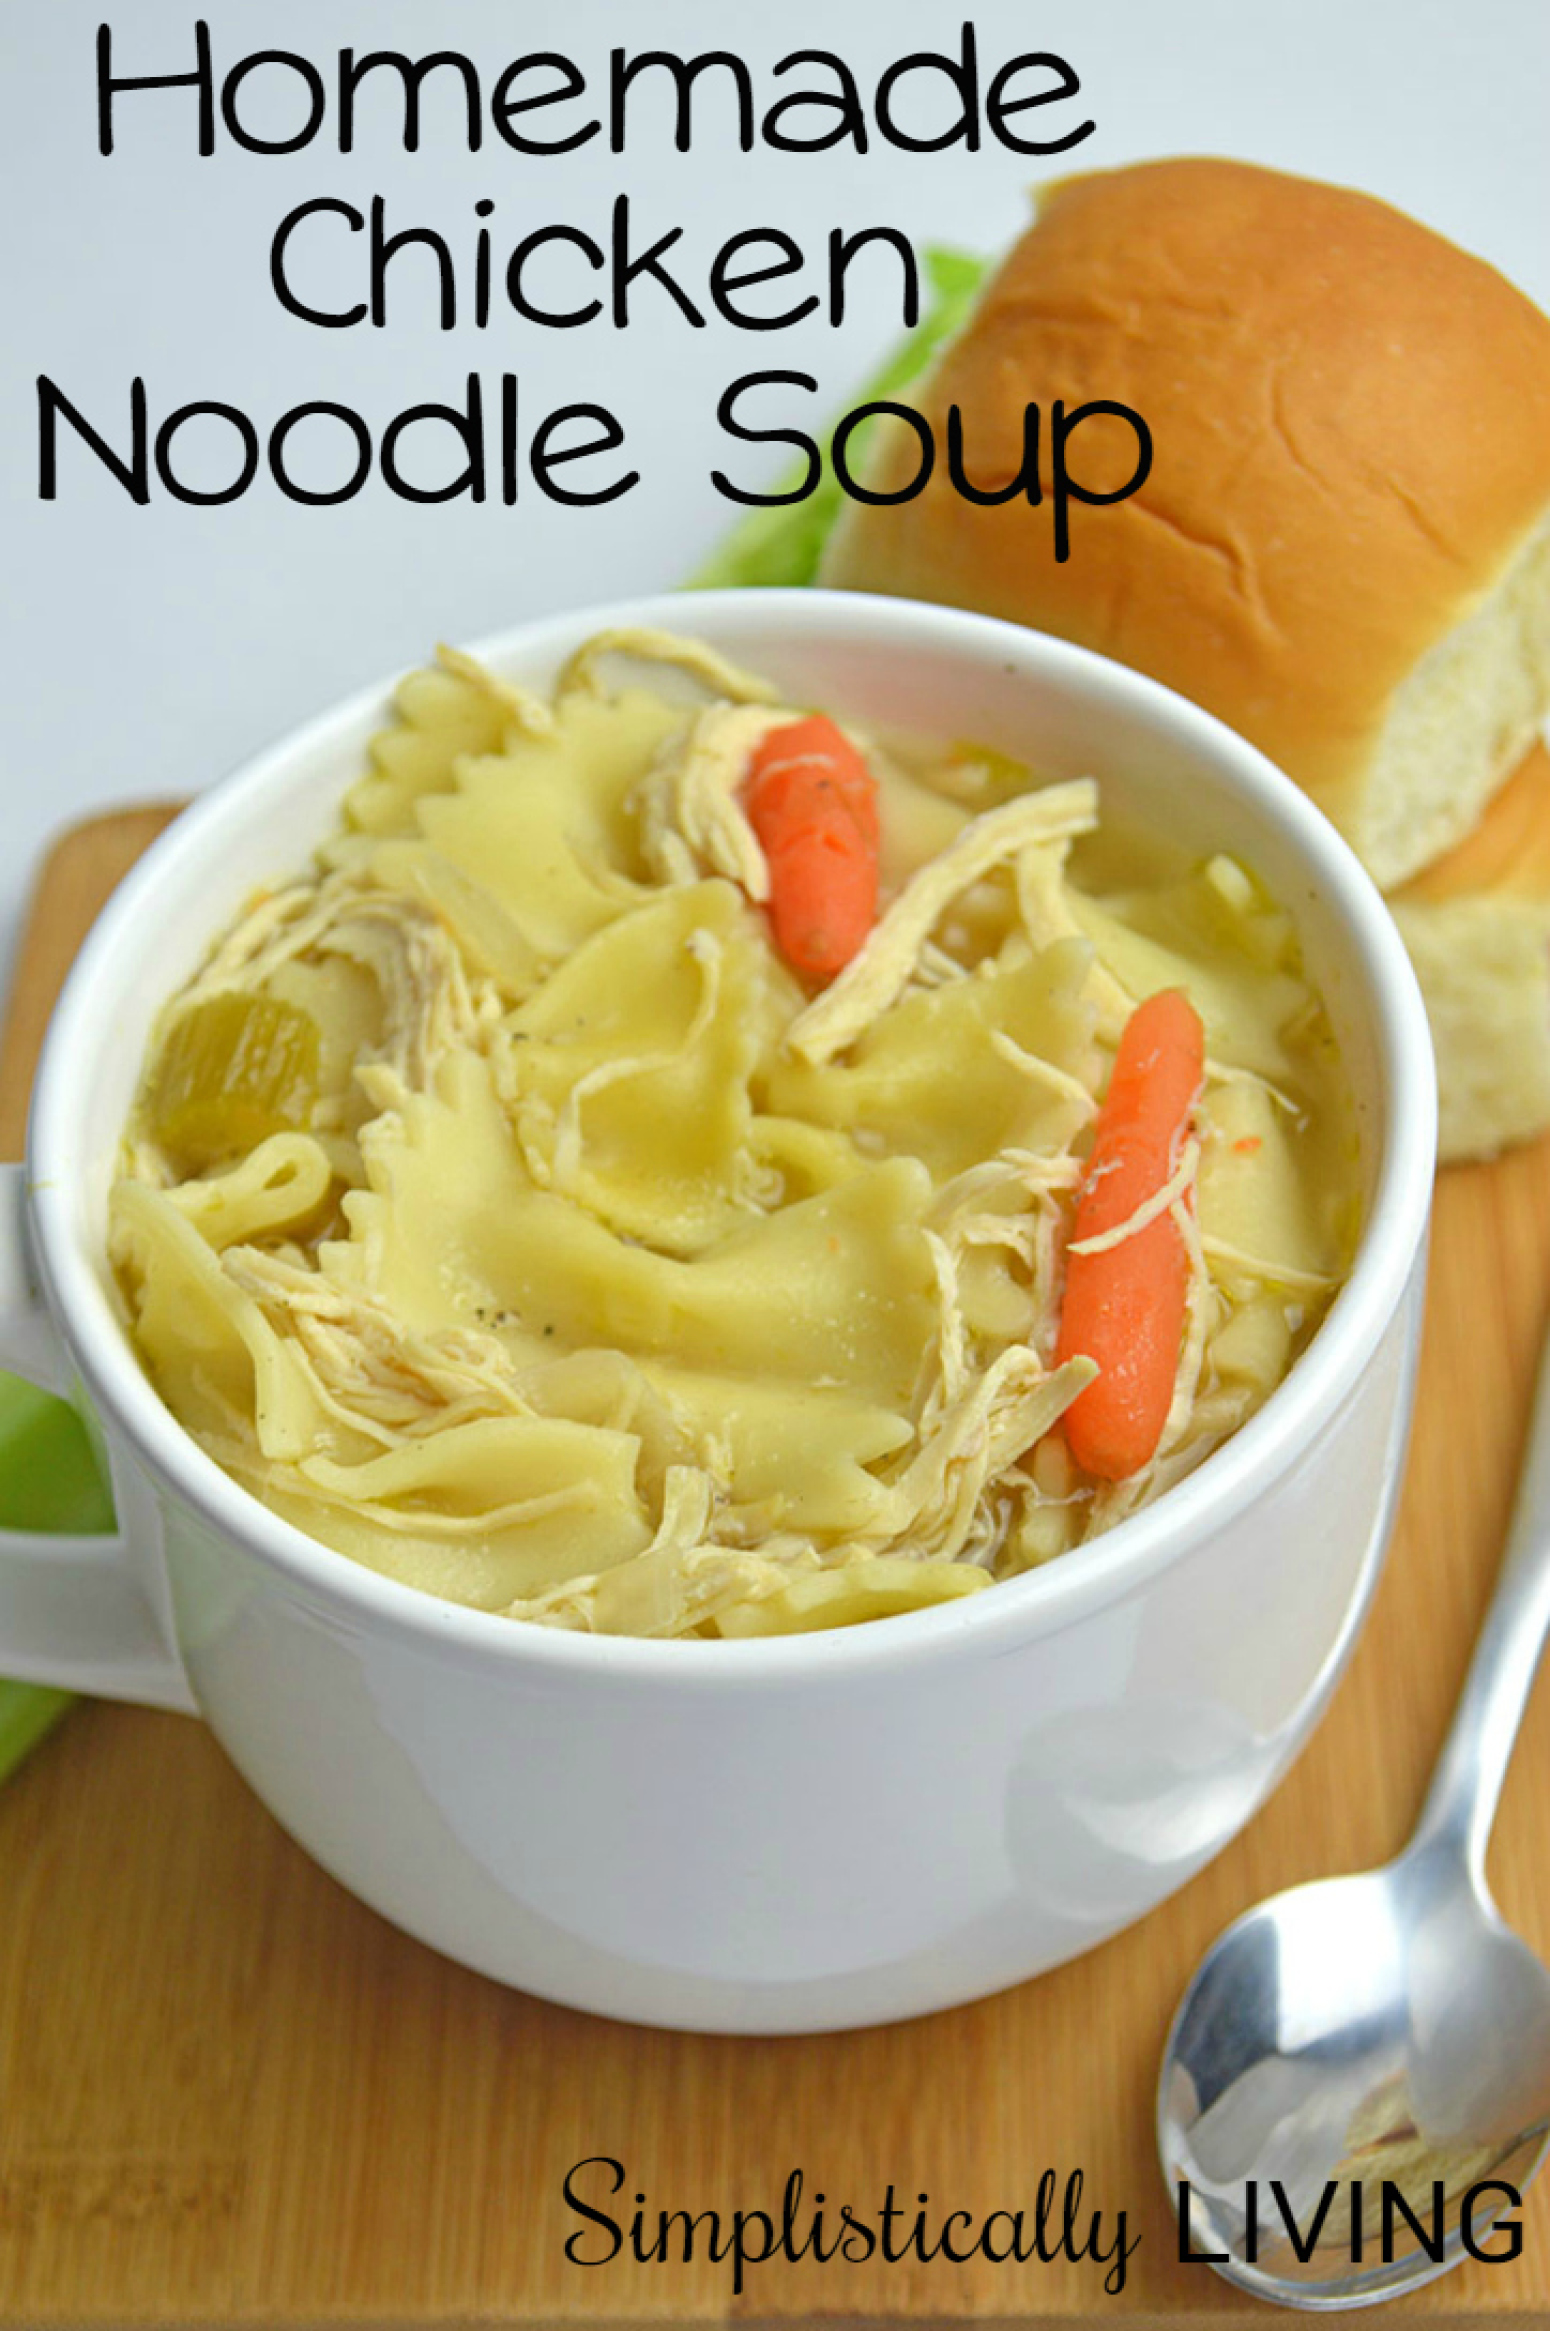 homemade chicken soup recipe cooker chicken noodle soup recipe just a 30397